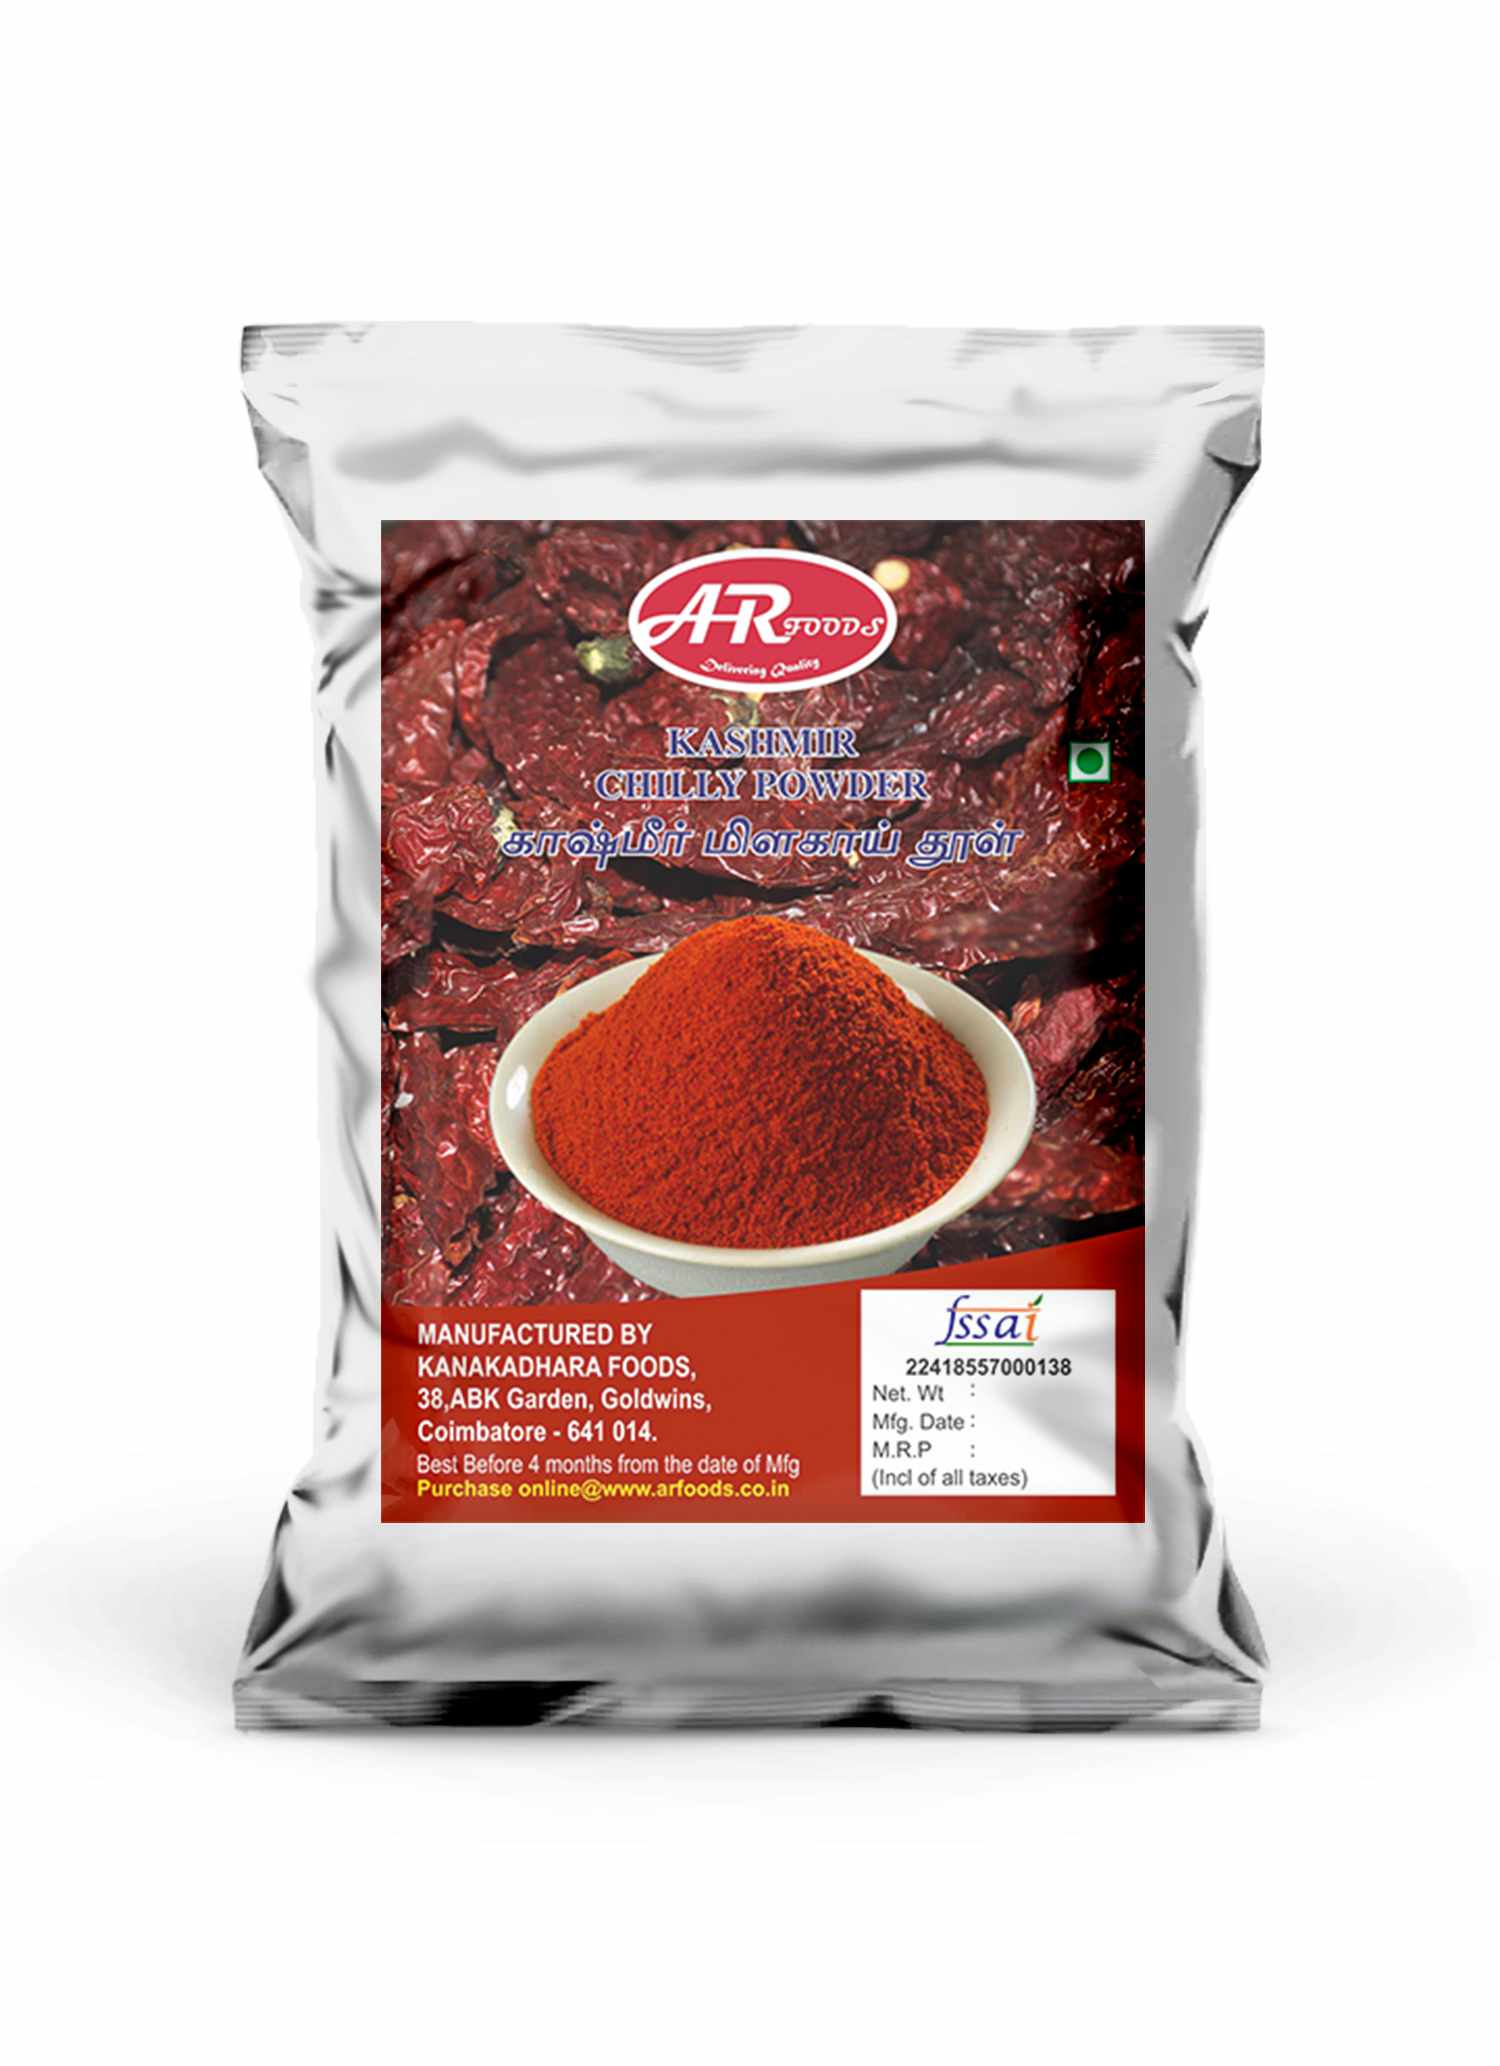 Kashmir chilly powder_ar_foods_coimbatore